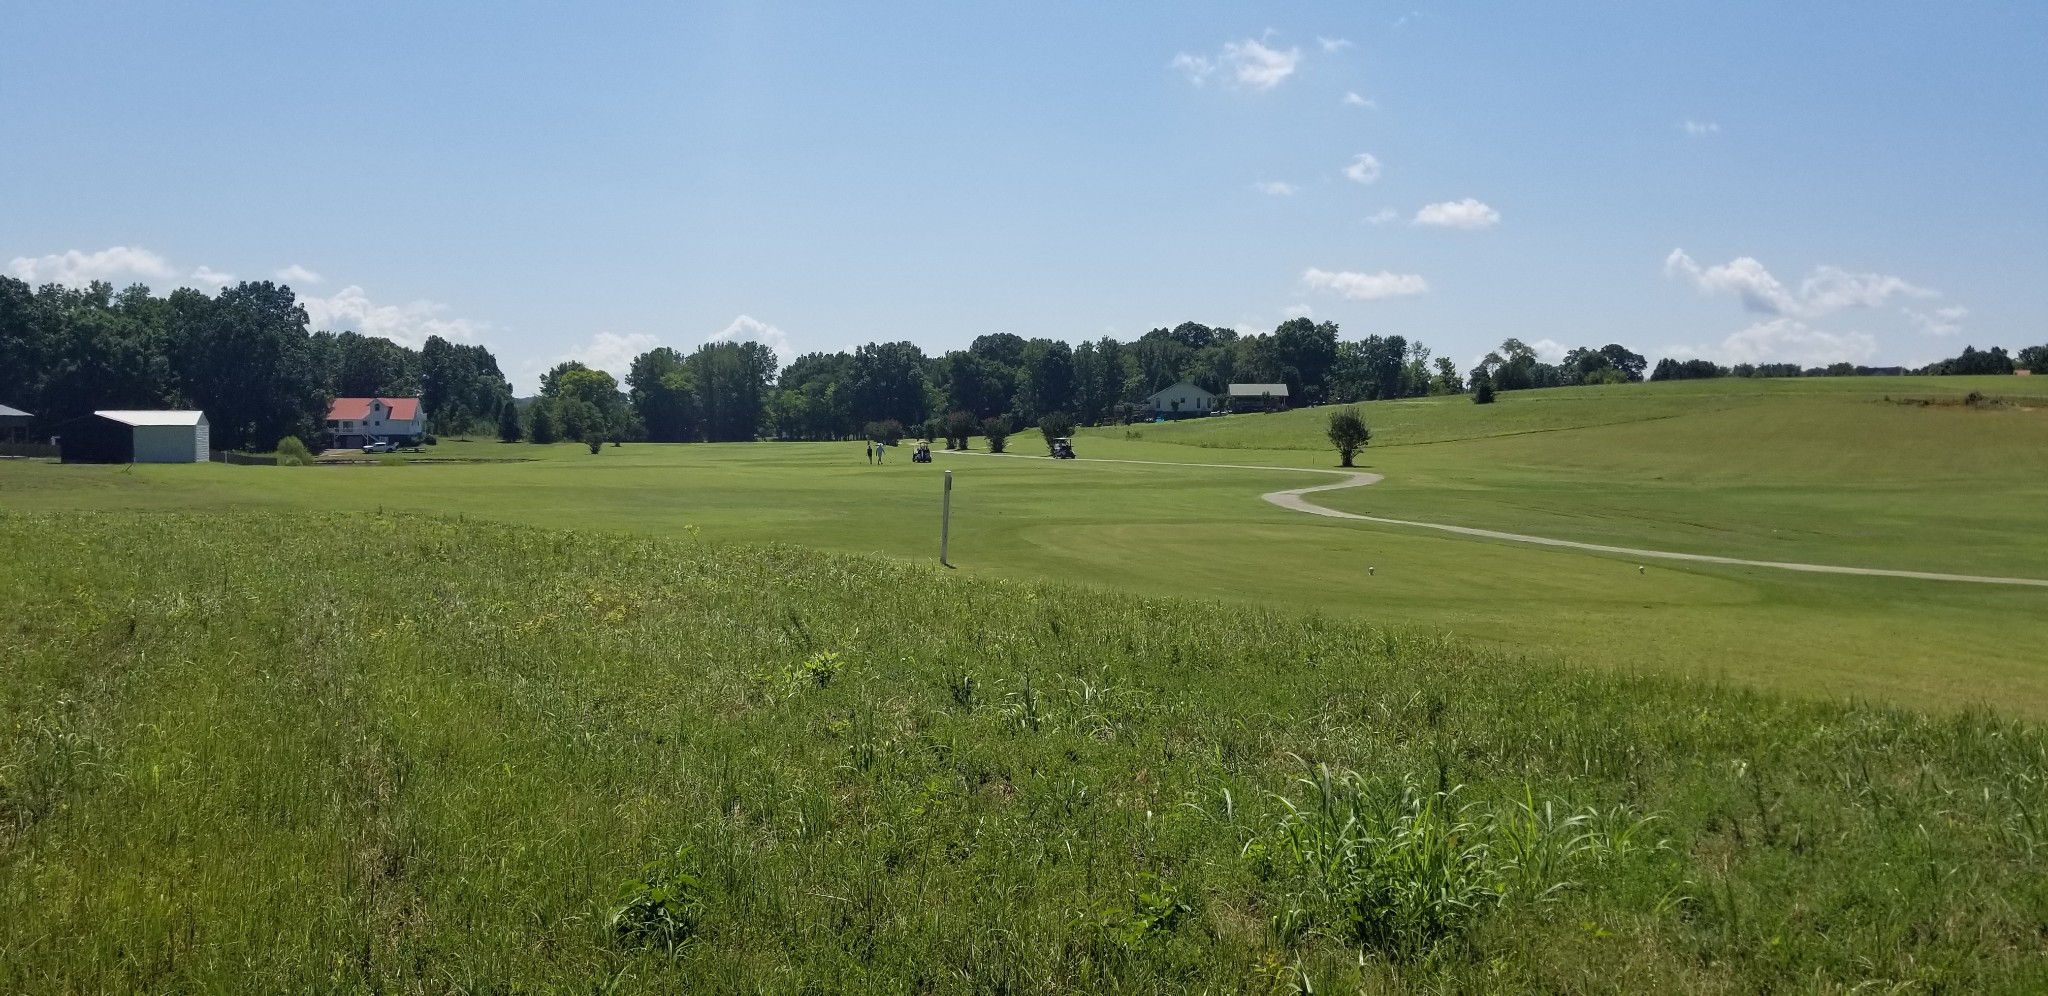 0 Golf Course Lane, Decaturville, TN 38329 - Decaturville, TN real estate listing